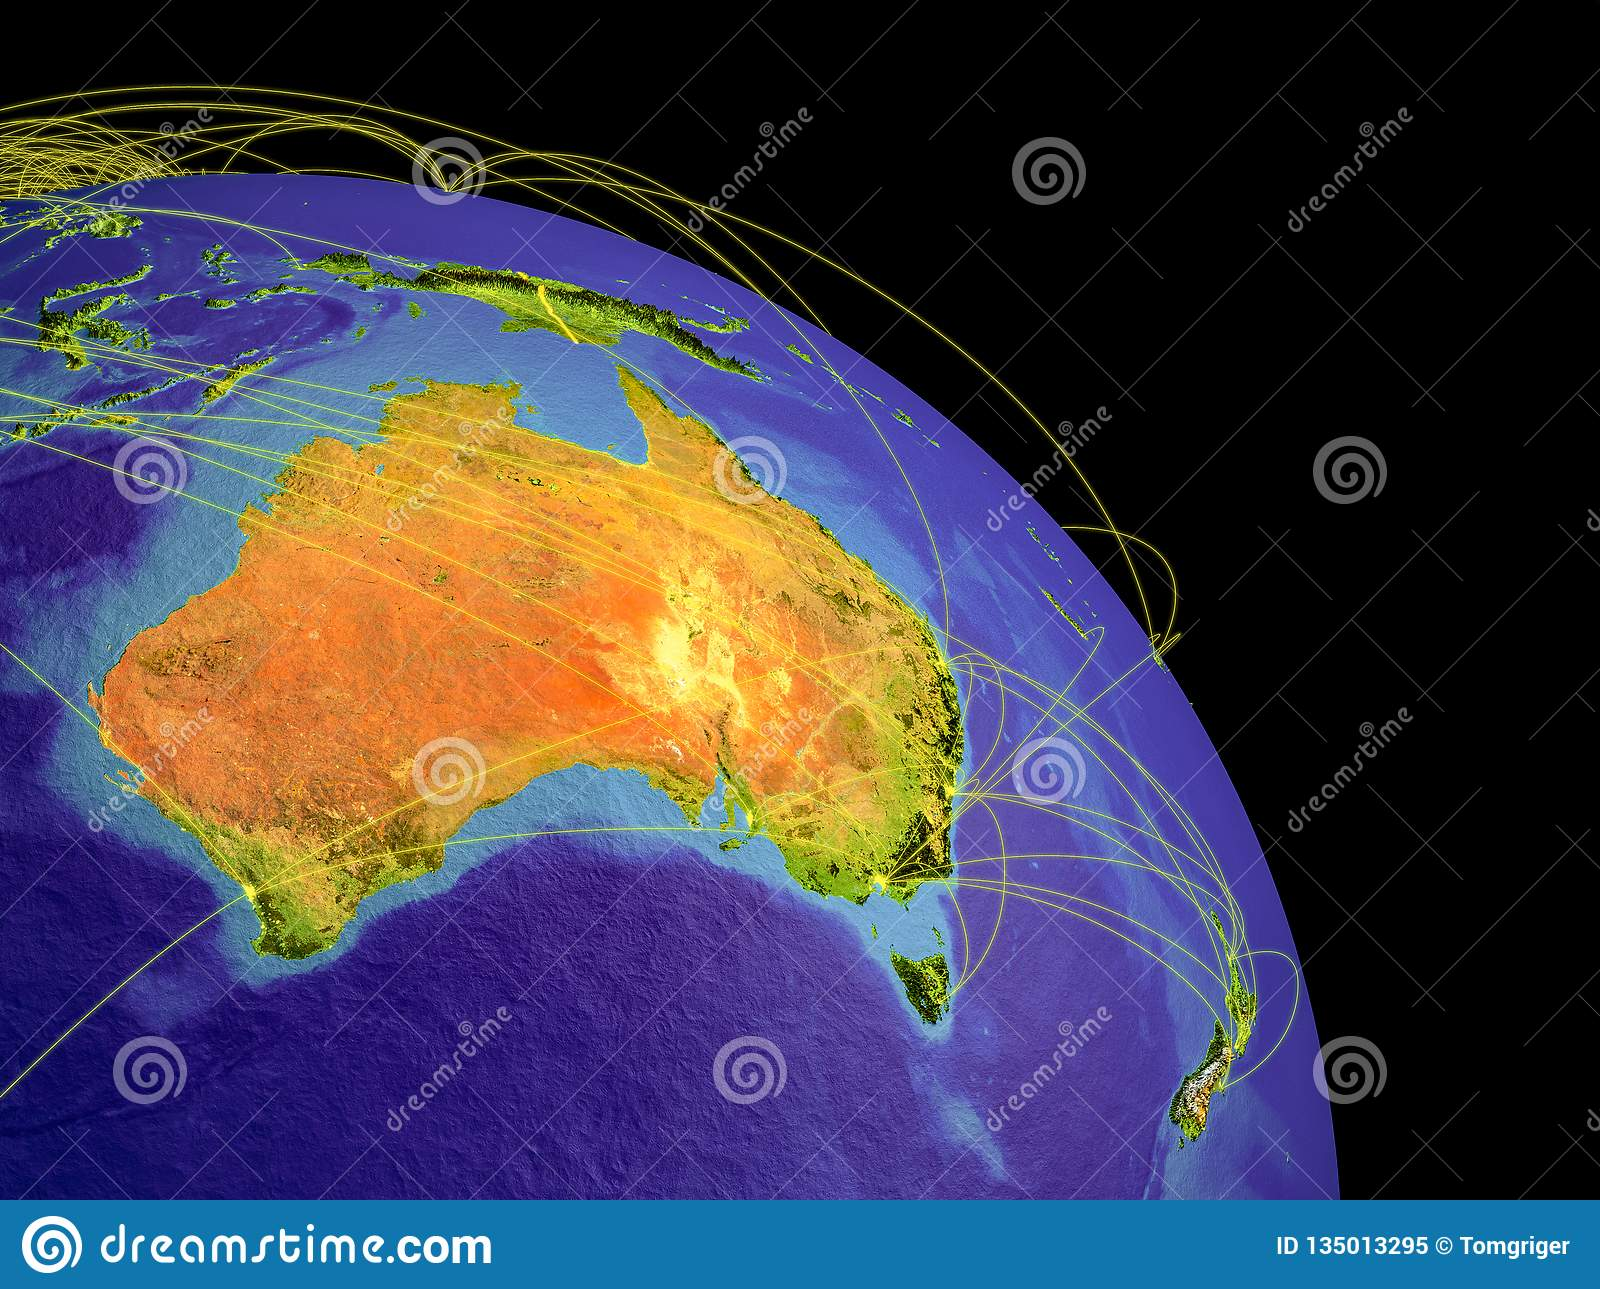 Map Of Australia From Space.Australia From Space Stock Illustration Illustration Of Space